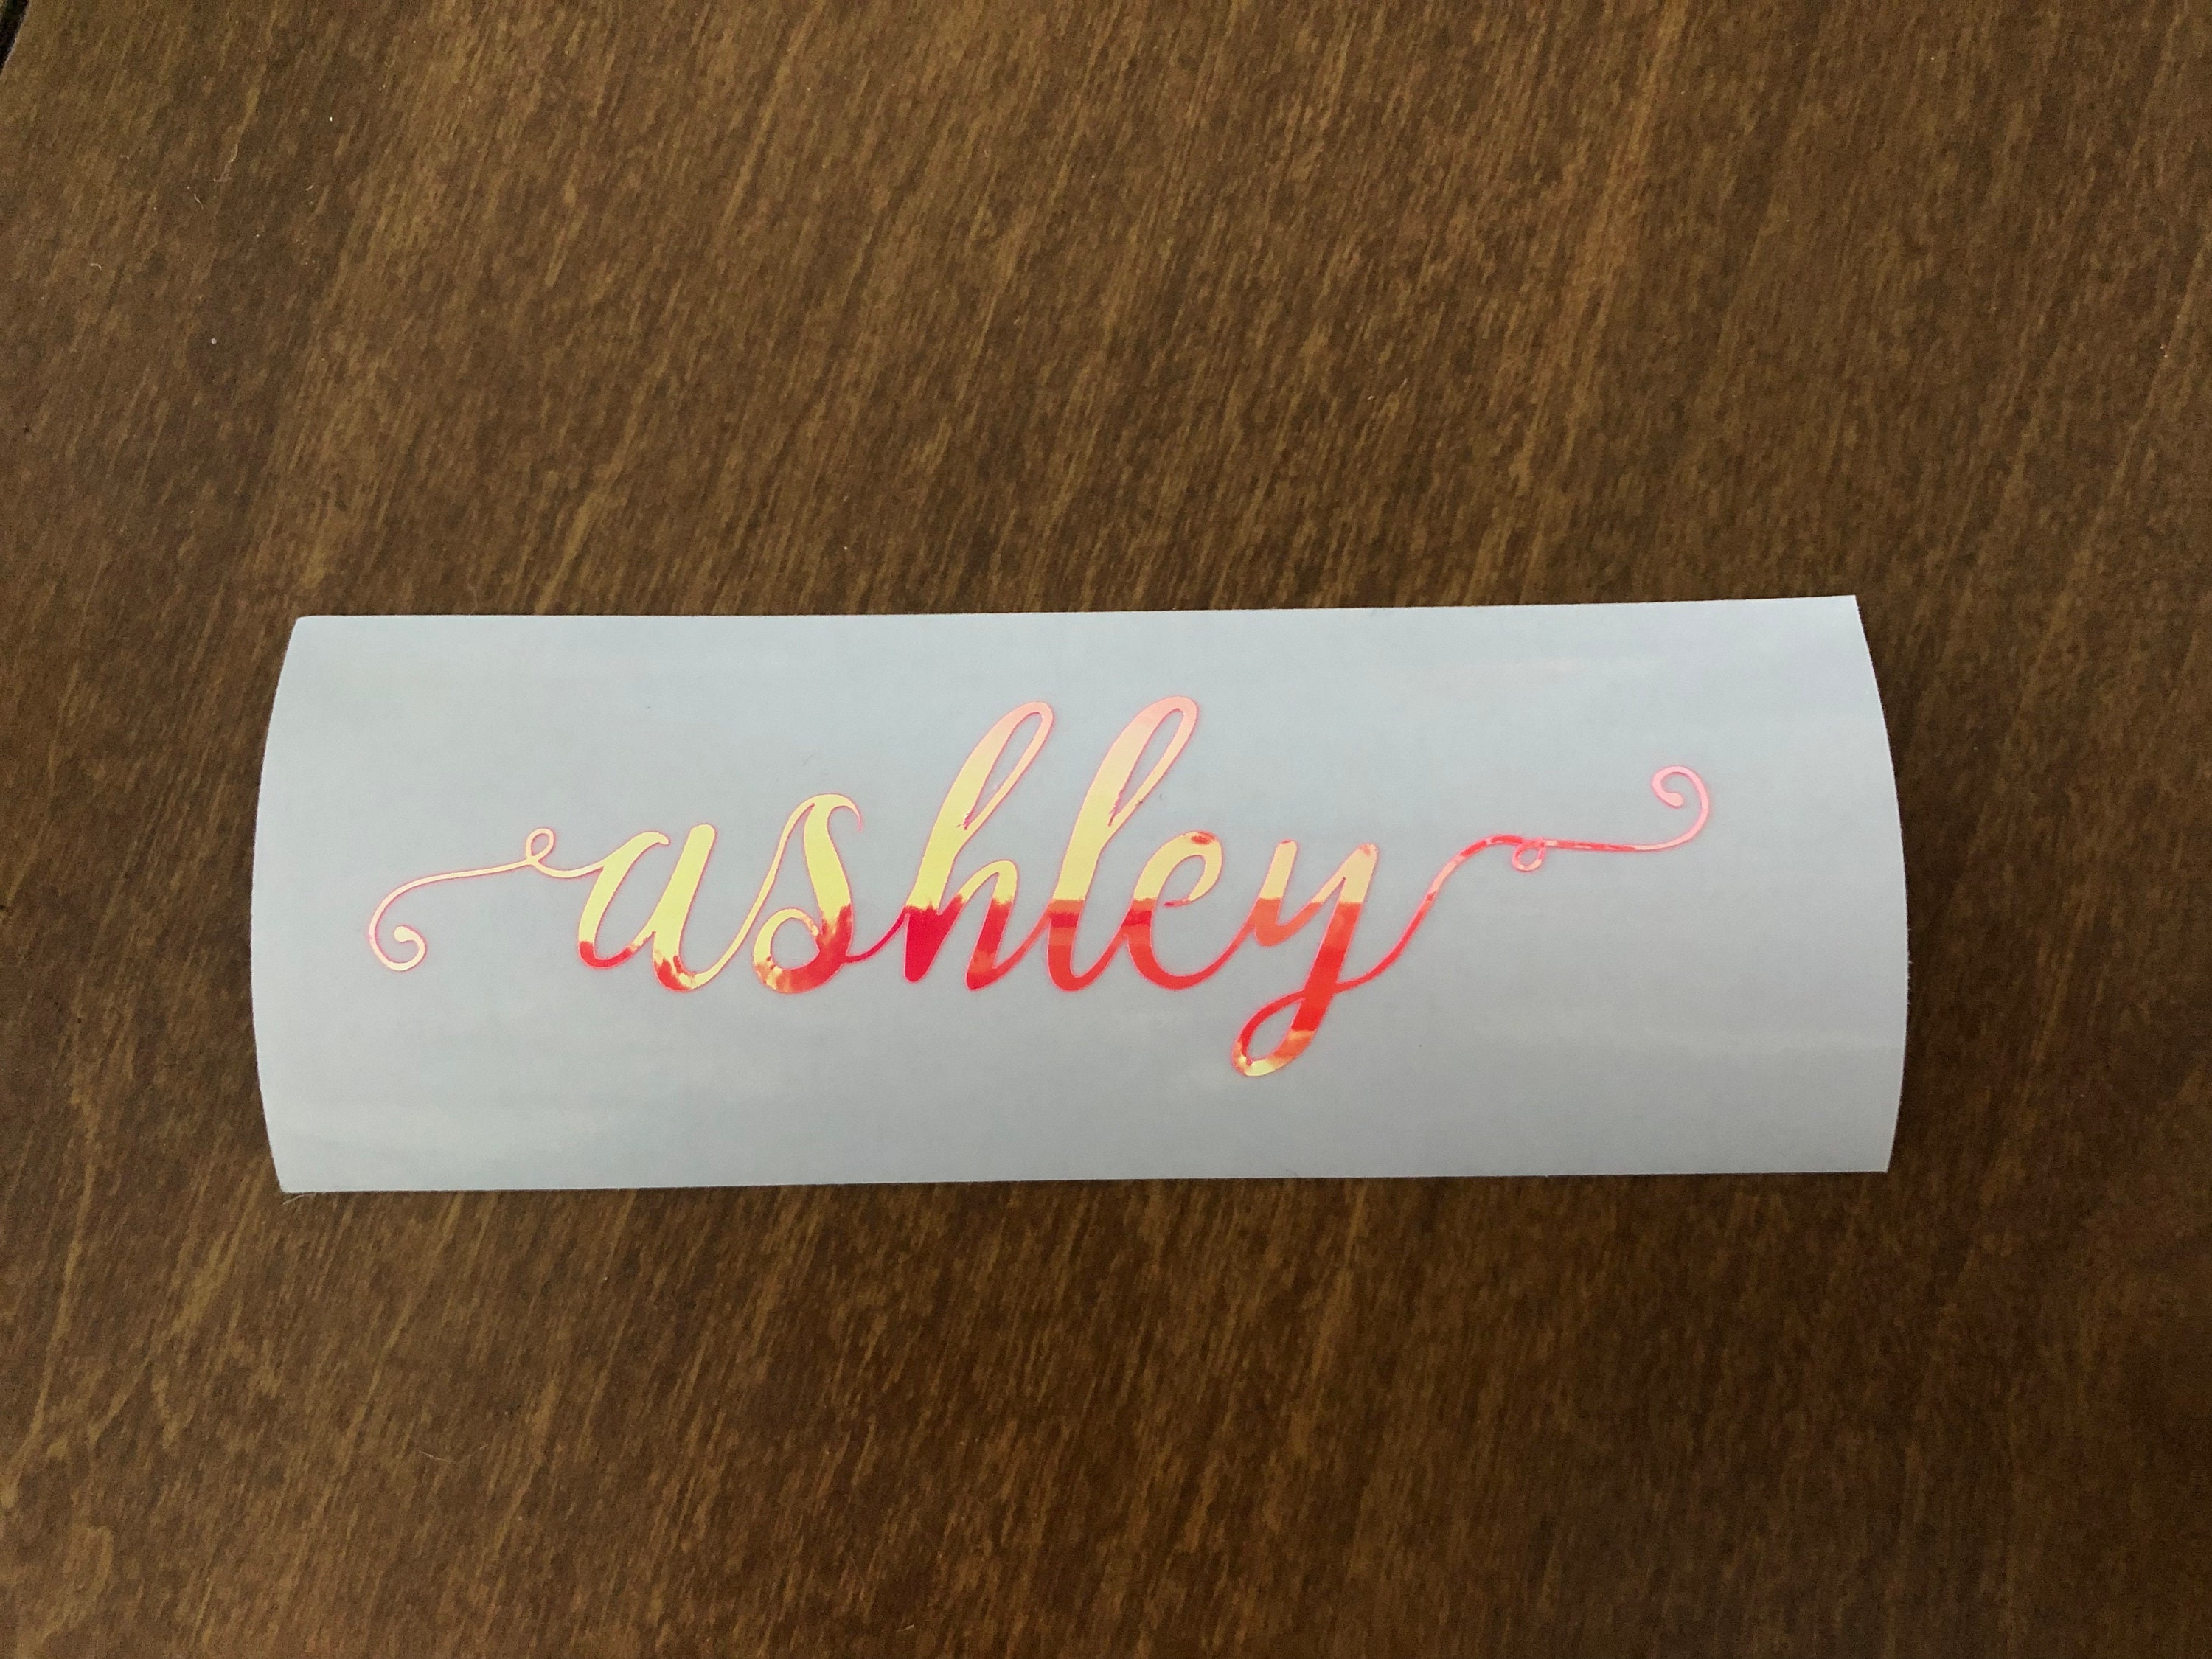 Small holographic shiny custom name sticker decal name decal name labels custom vinyl sticker custom vinyl decal 3inches 5inches